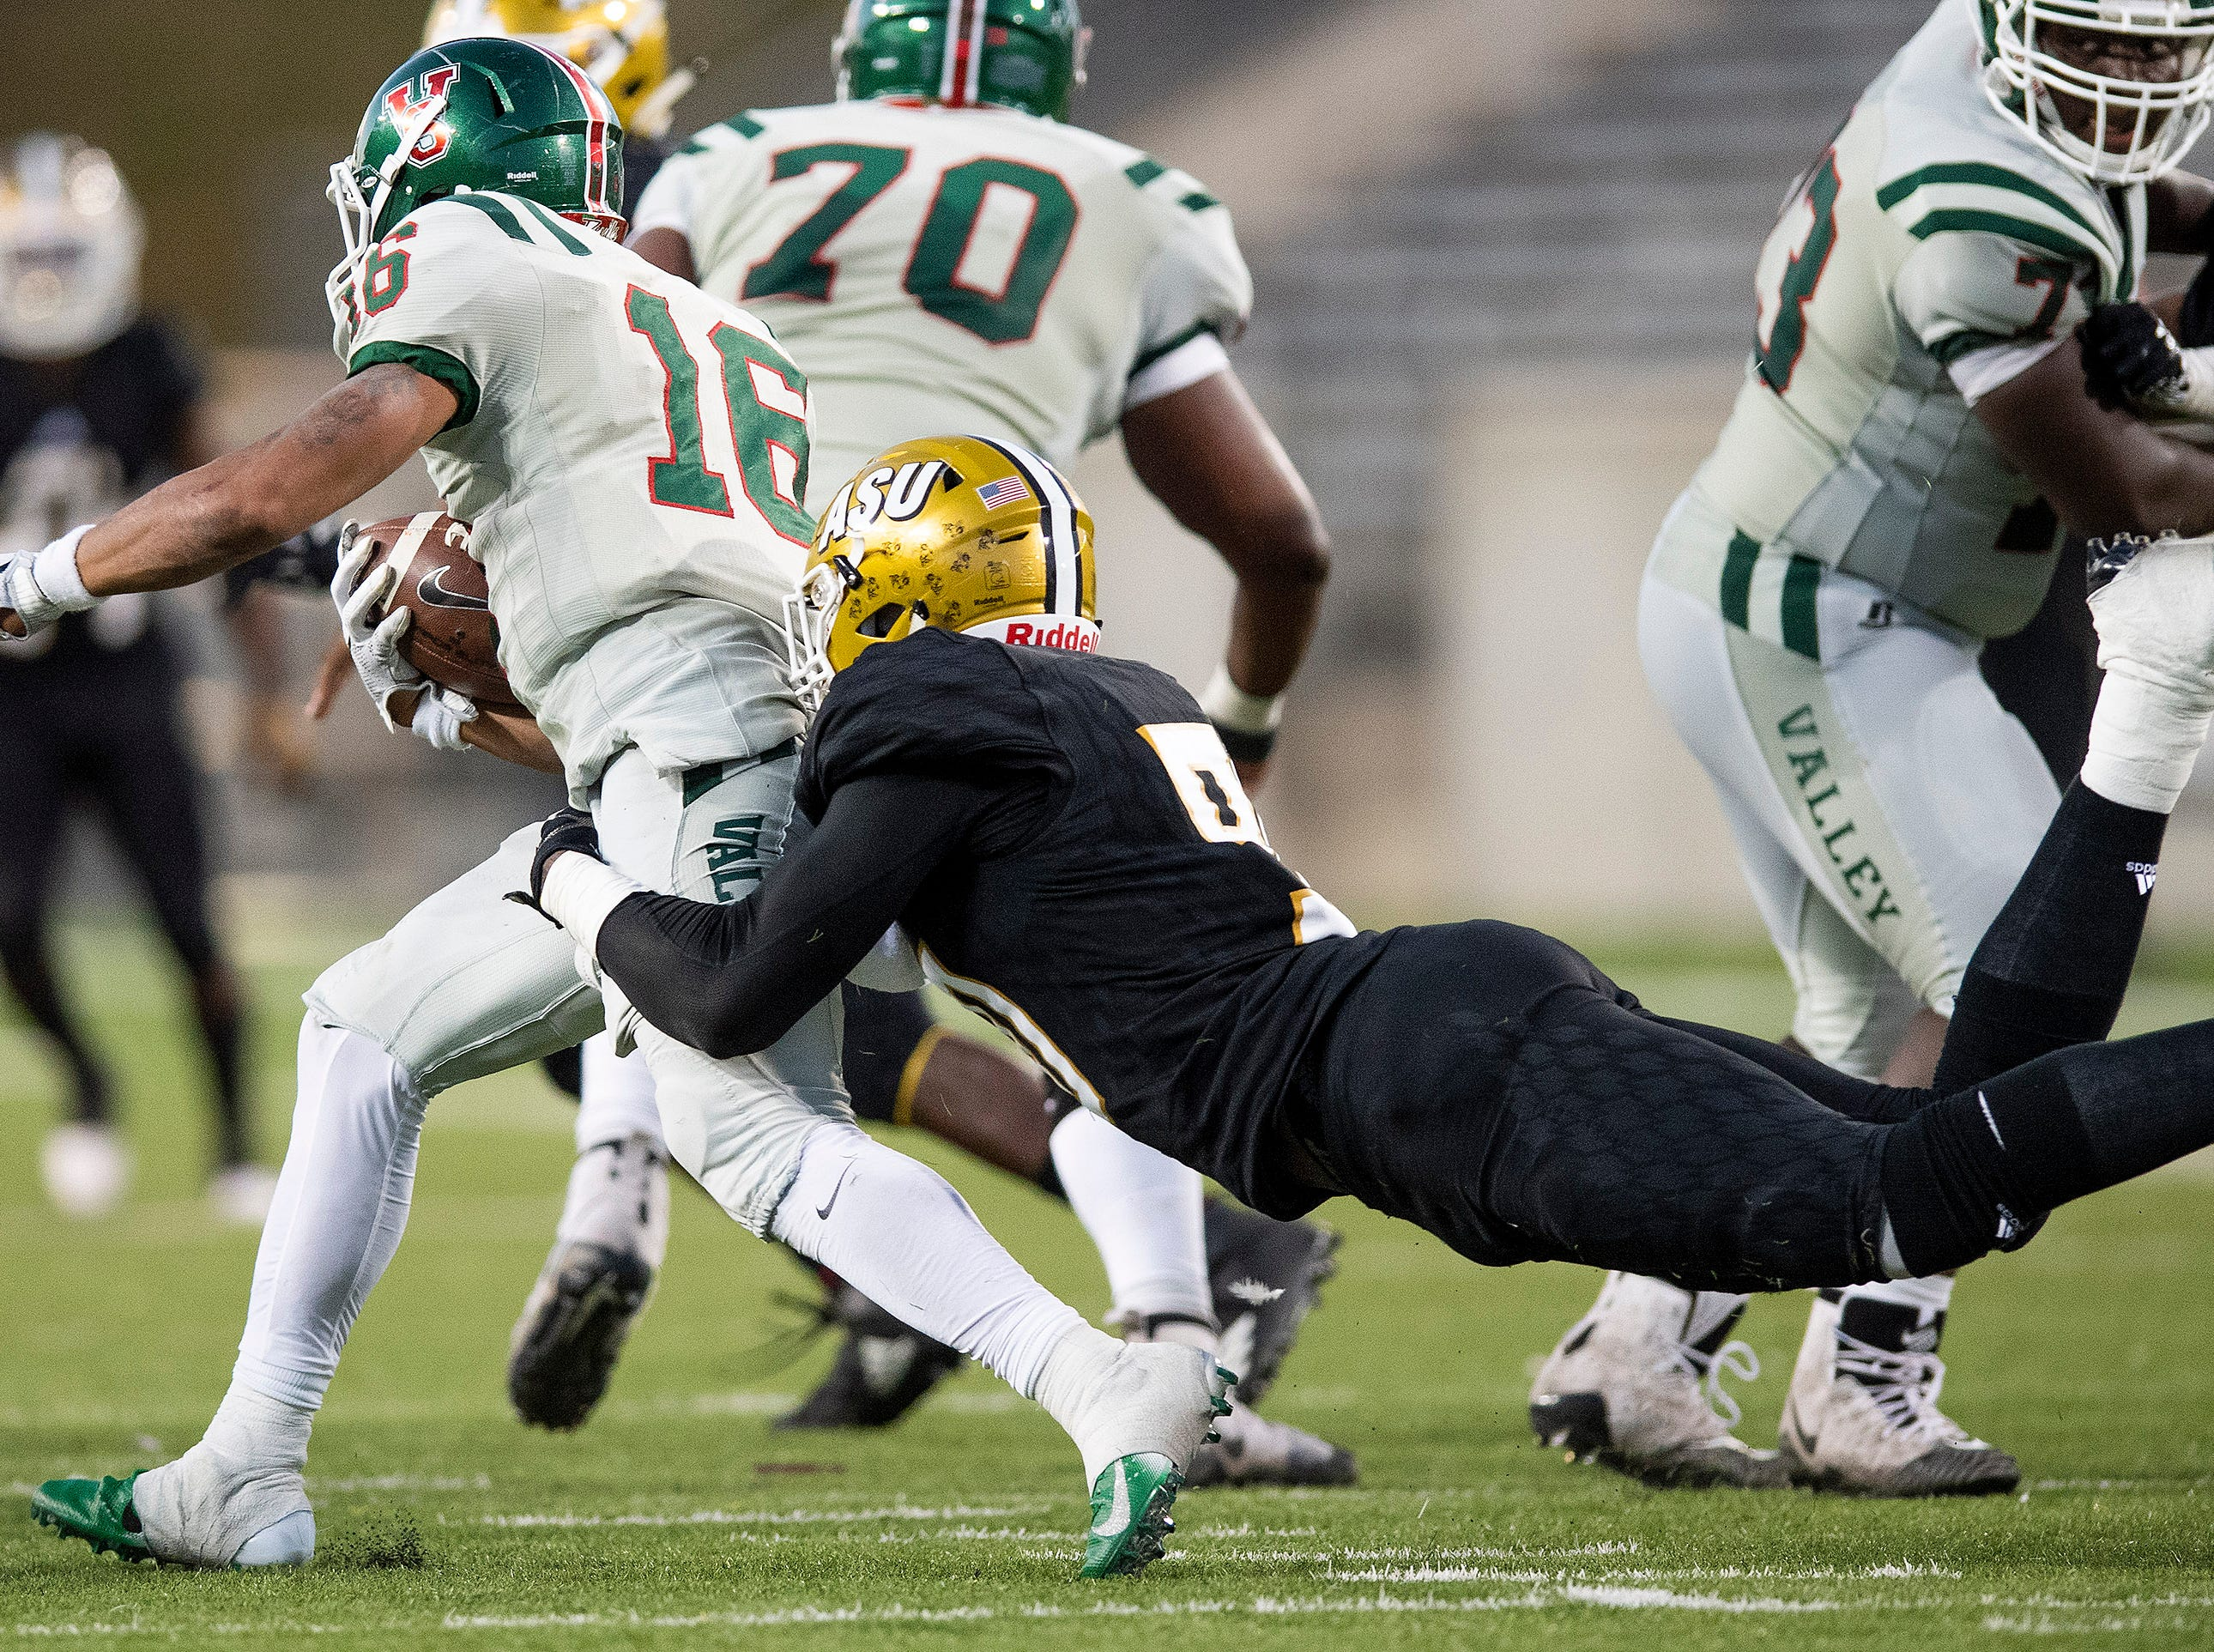 Alabama State University defensive lineman Lucky Oyovwi (90)  stops Mississippi Valley State's Dejerric Bryant (16) during the Turkey Day Classic at Hornet Stadium on the ASU campus in Montgomery, Ala., on Thanksgiving Day, Thursday November 22, 2018.